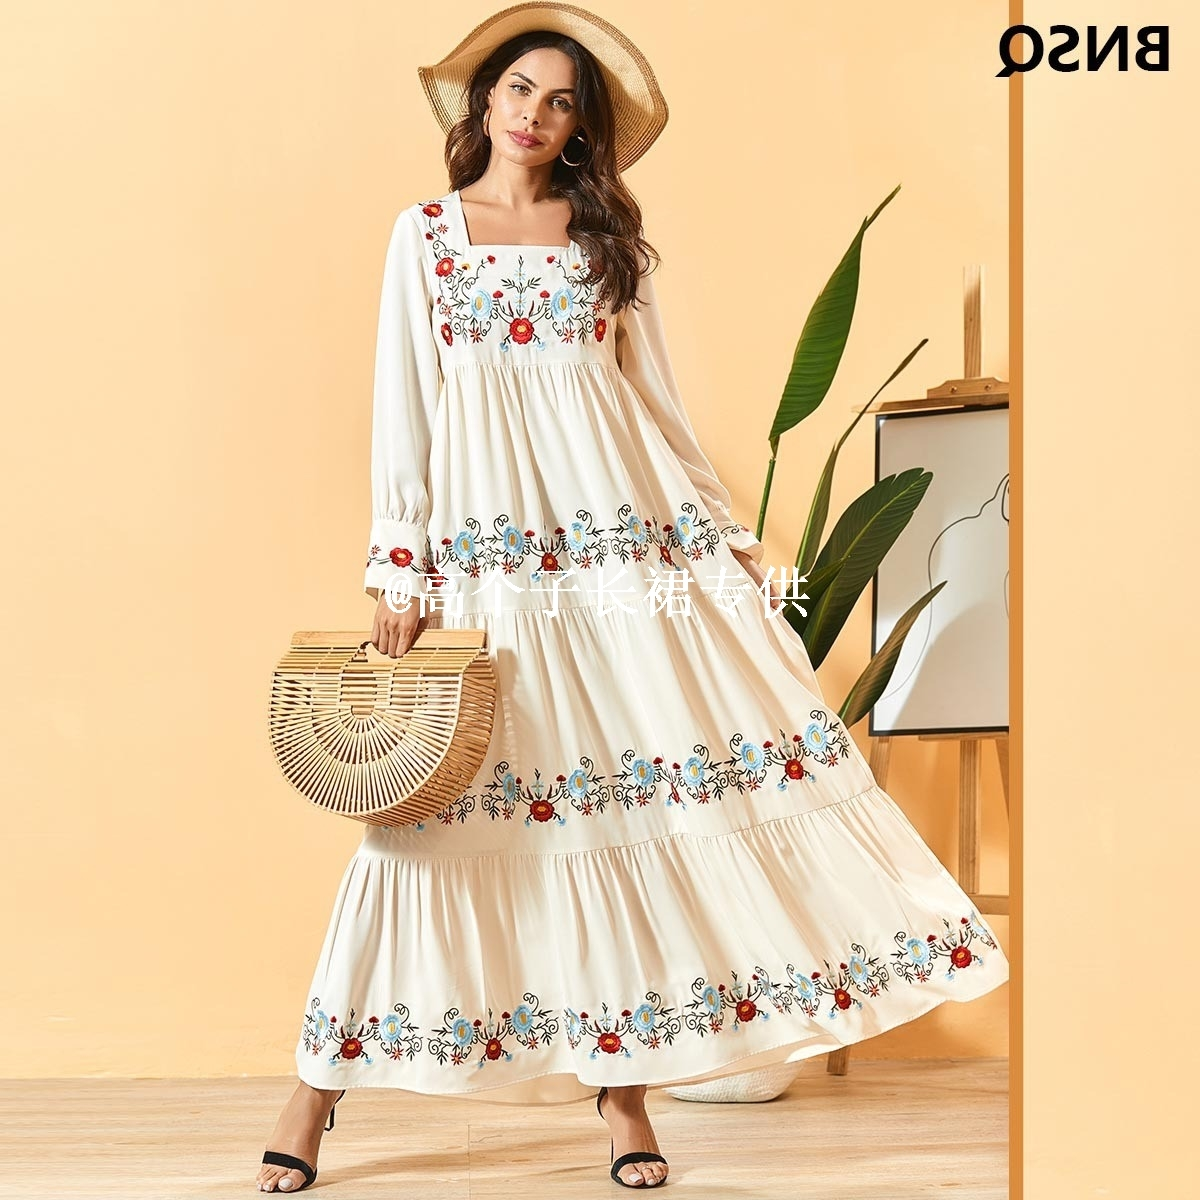 Bohemian embroidered dress with high swing and ankle length